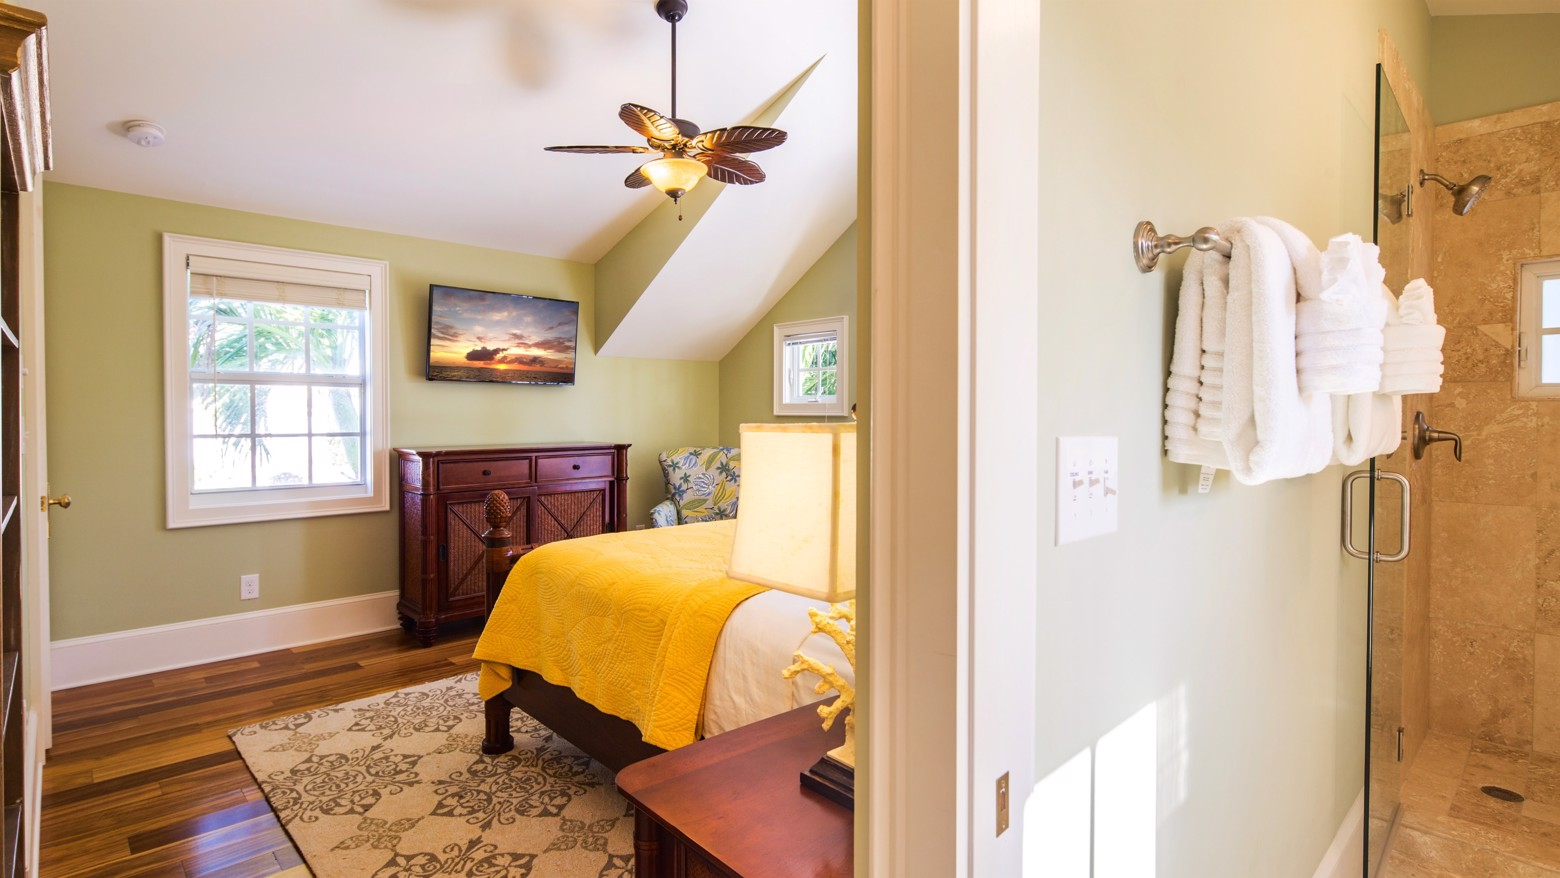 32-733LOVELANE-16x9-upstairsmasterbedroombathroom.jpg image